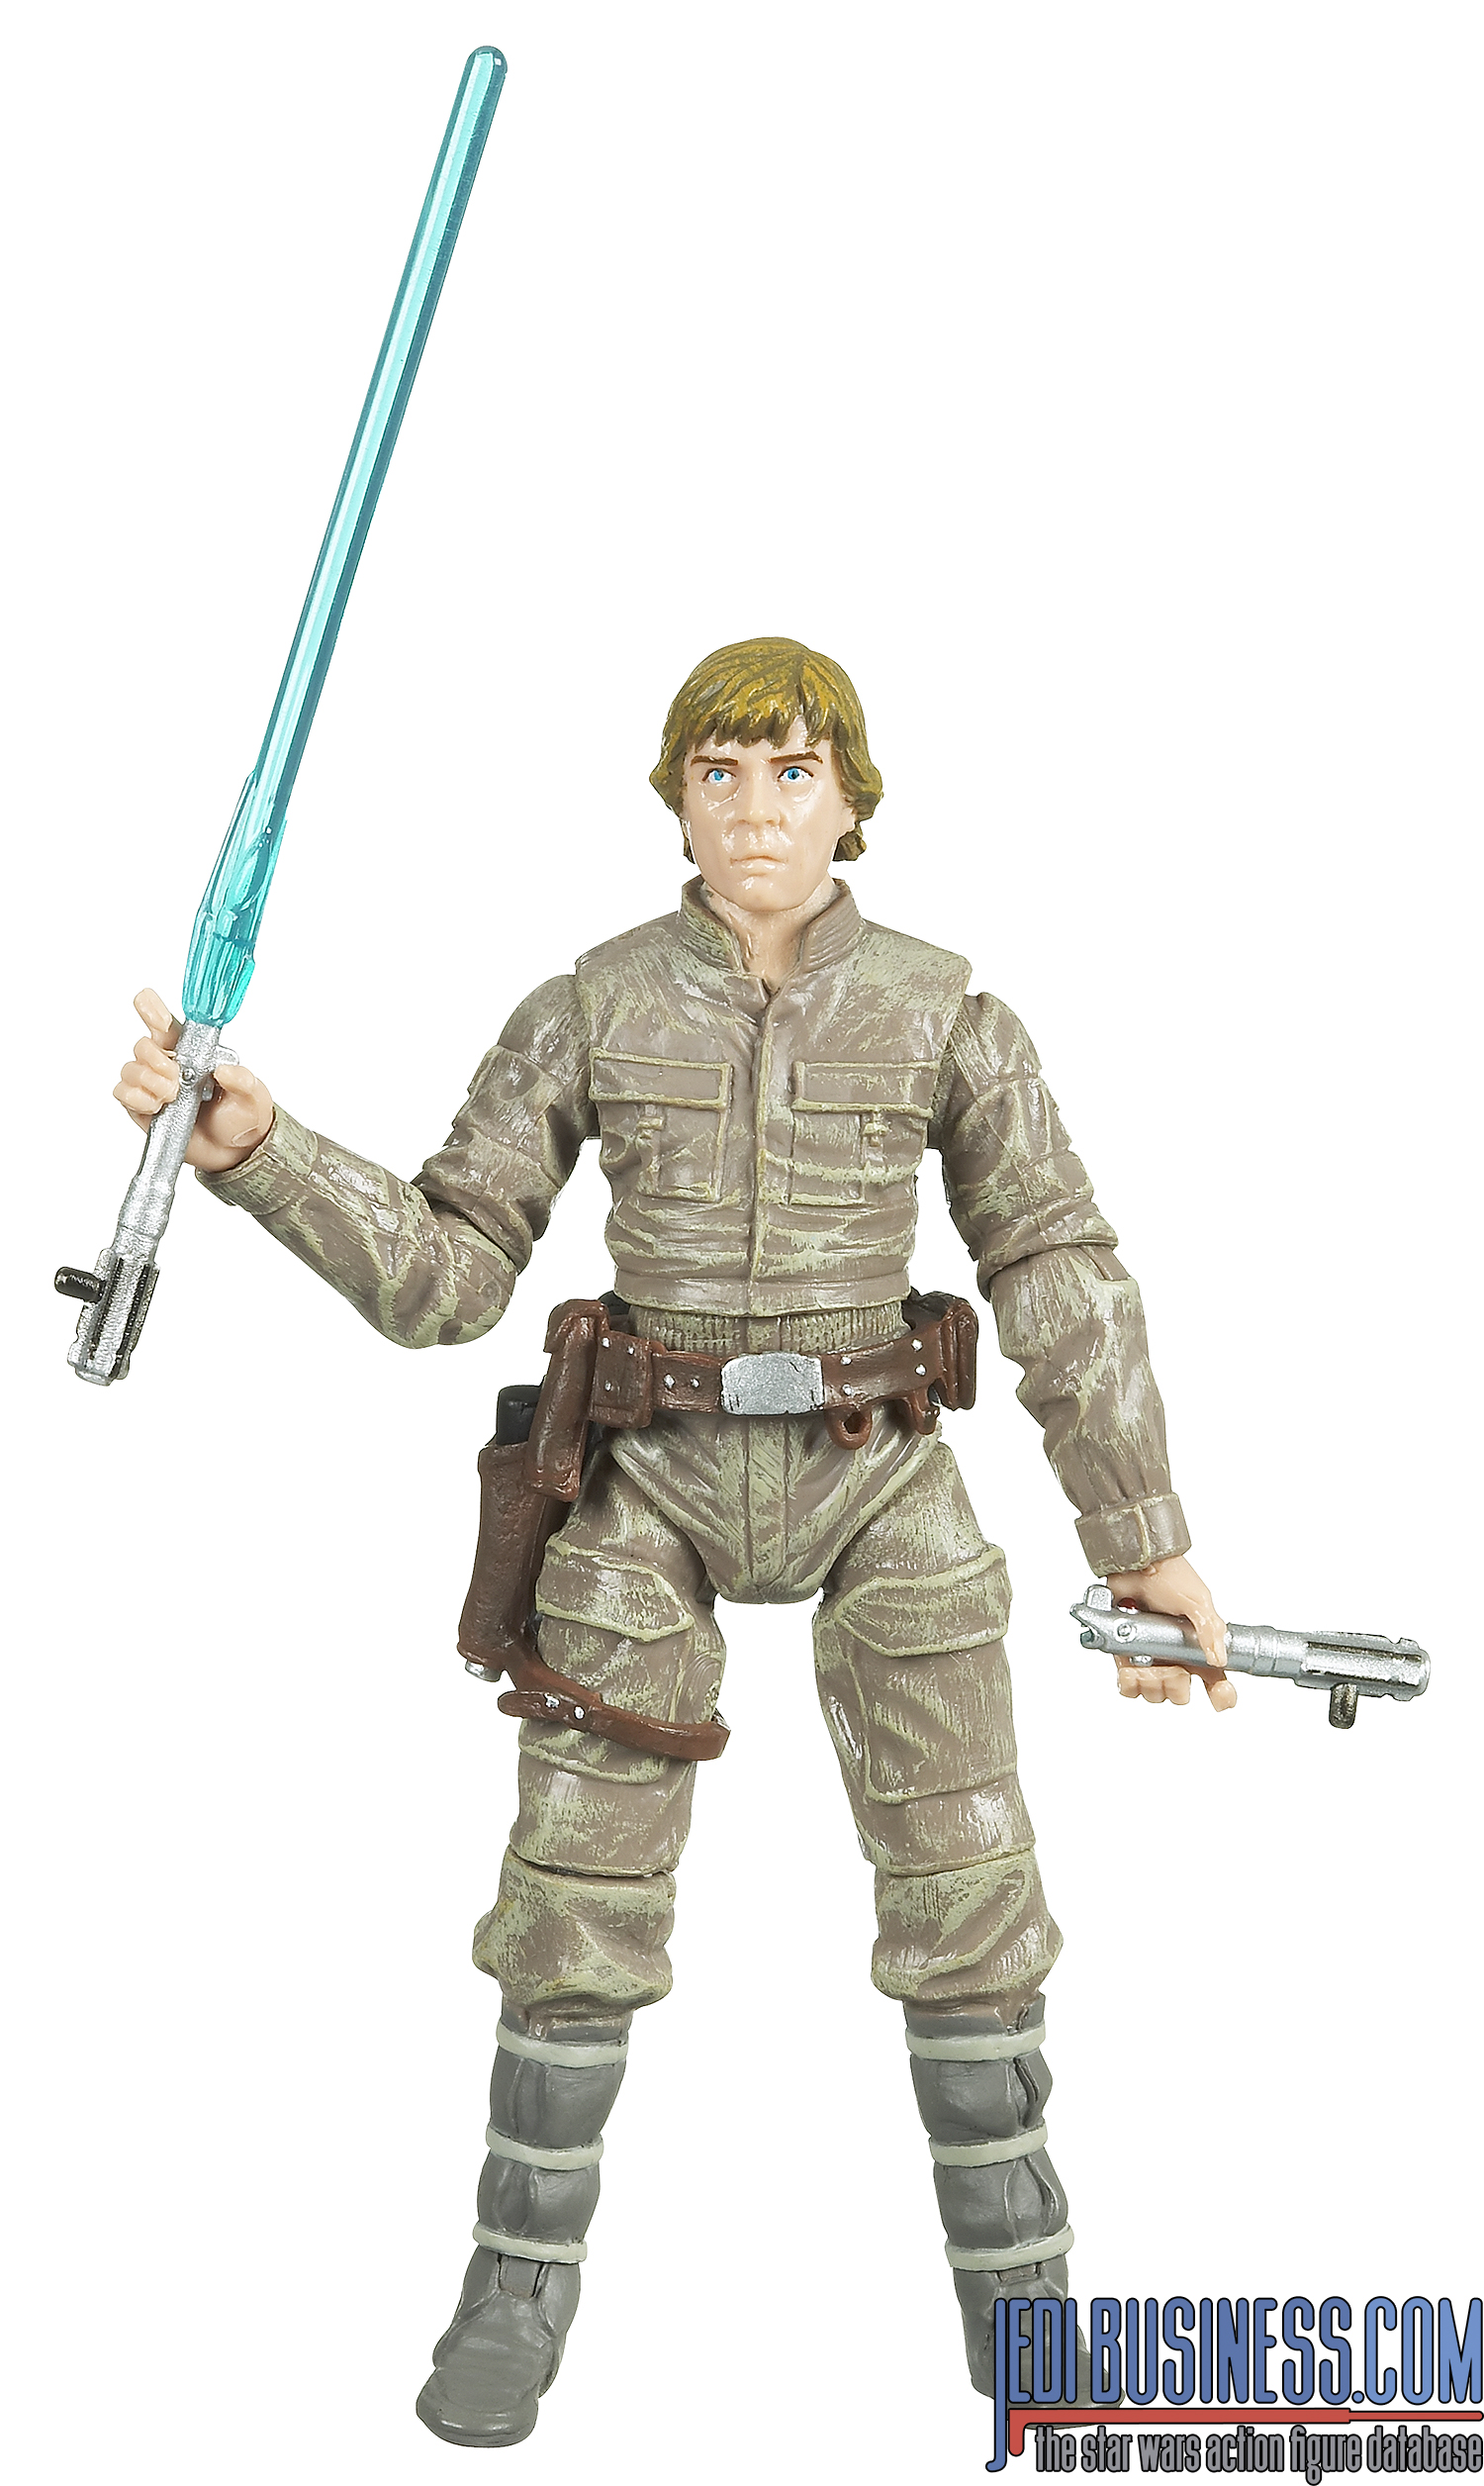 Star Wars figures for 2020